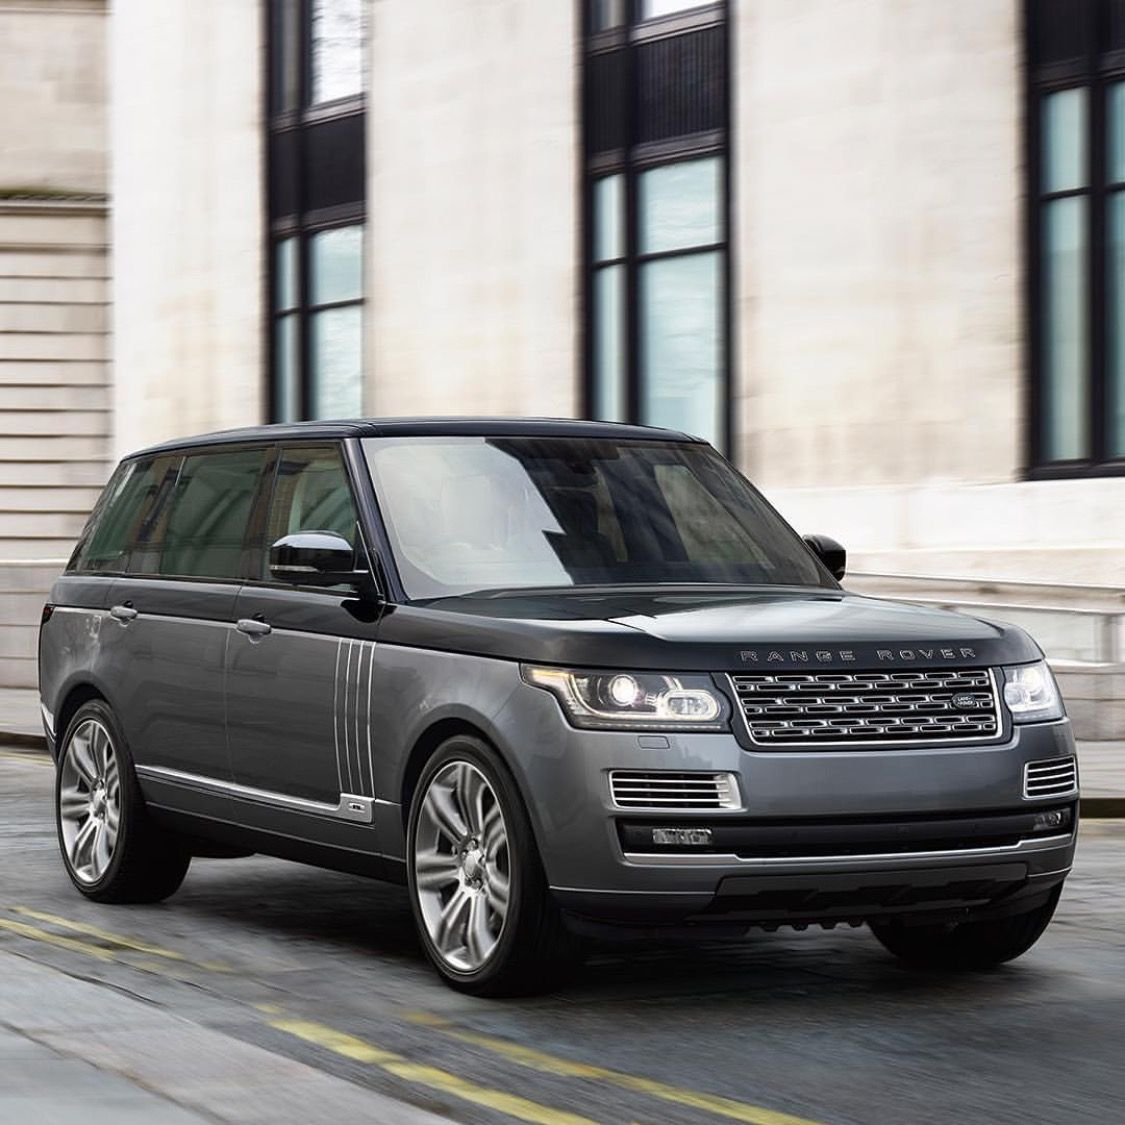 Land rover unveiled the new range rover sv auto biography at the new york international auto show in 2015 and thus adds even more luxury